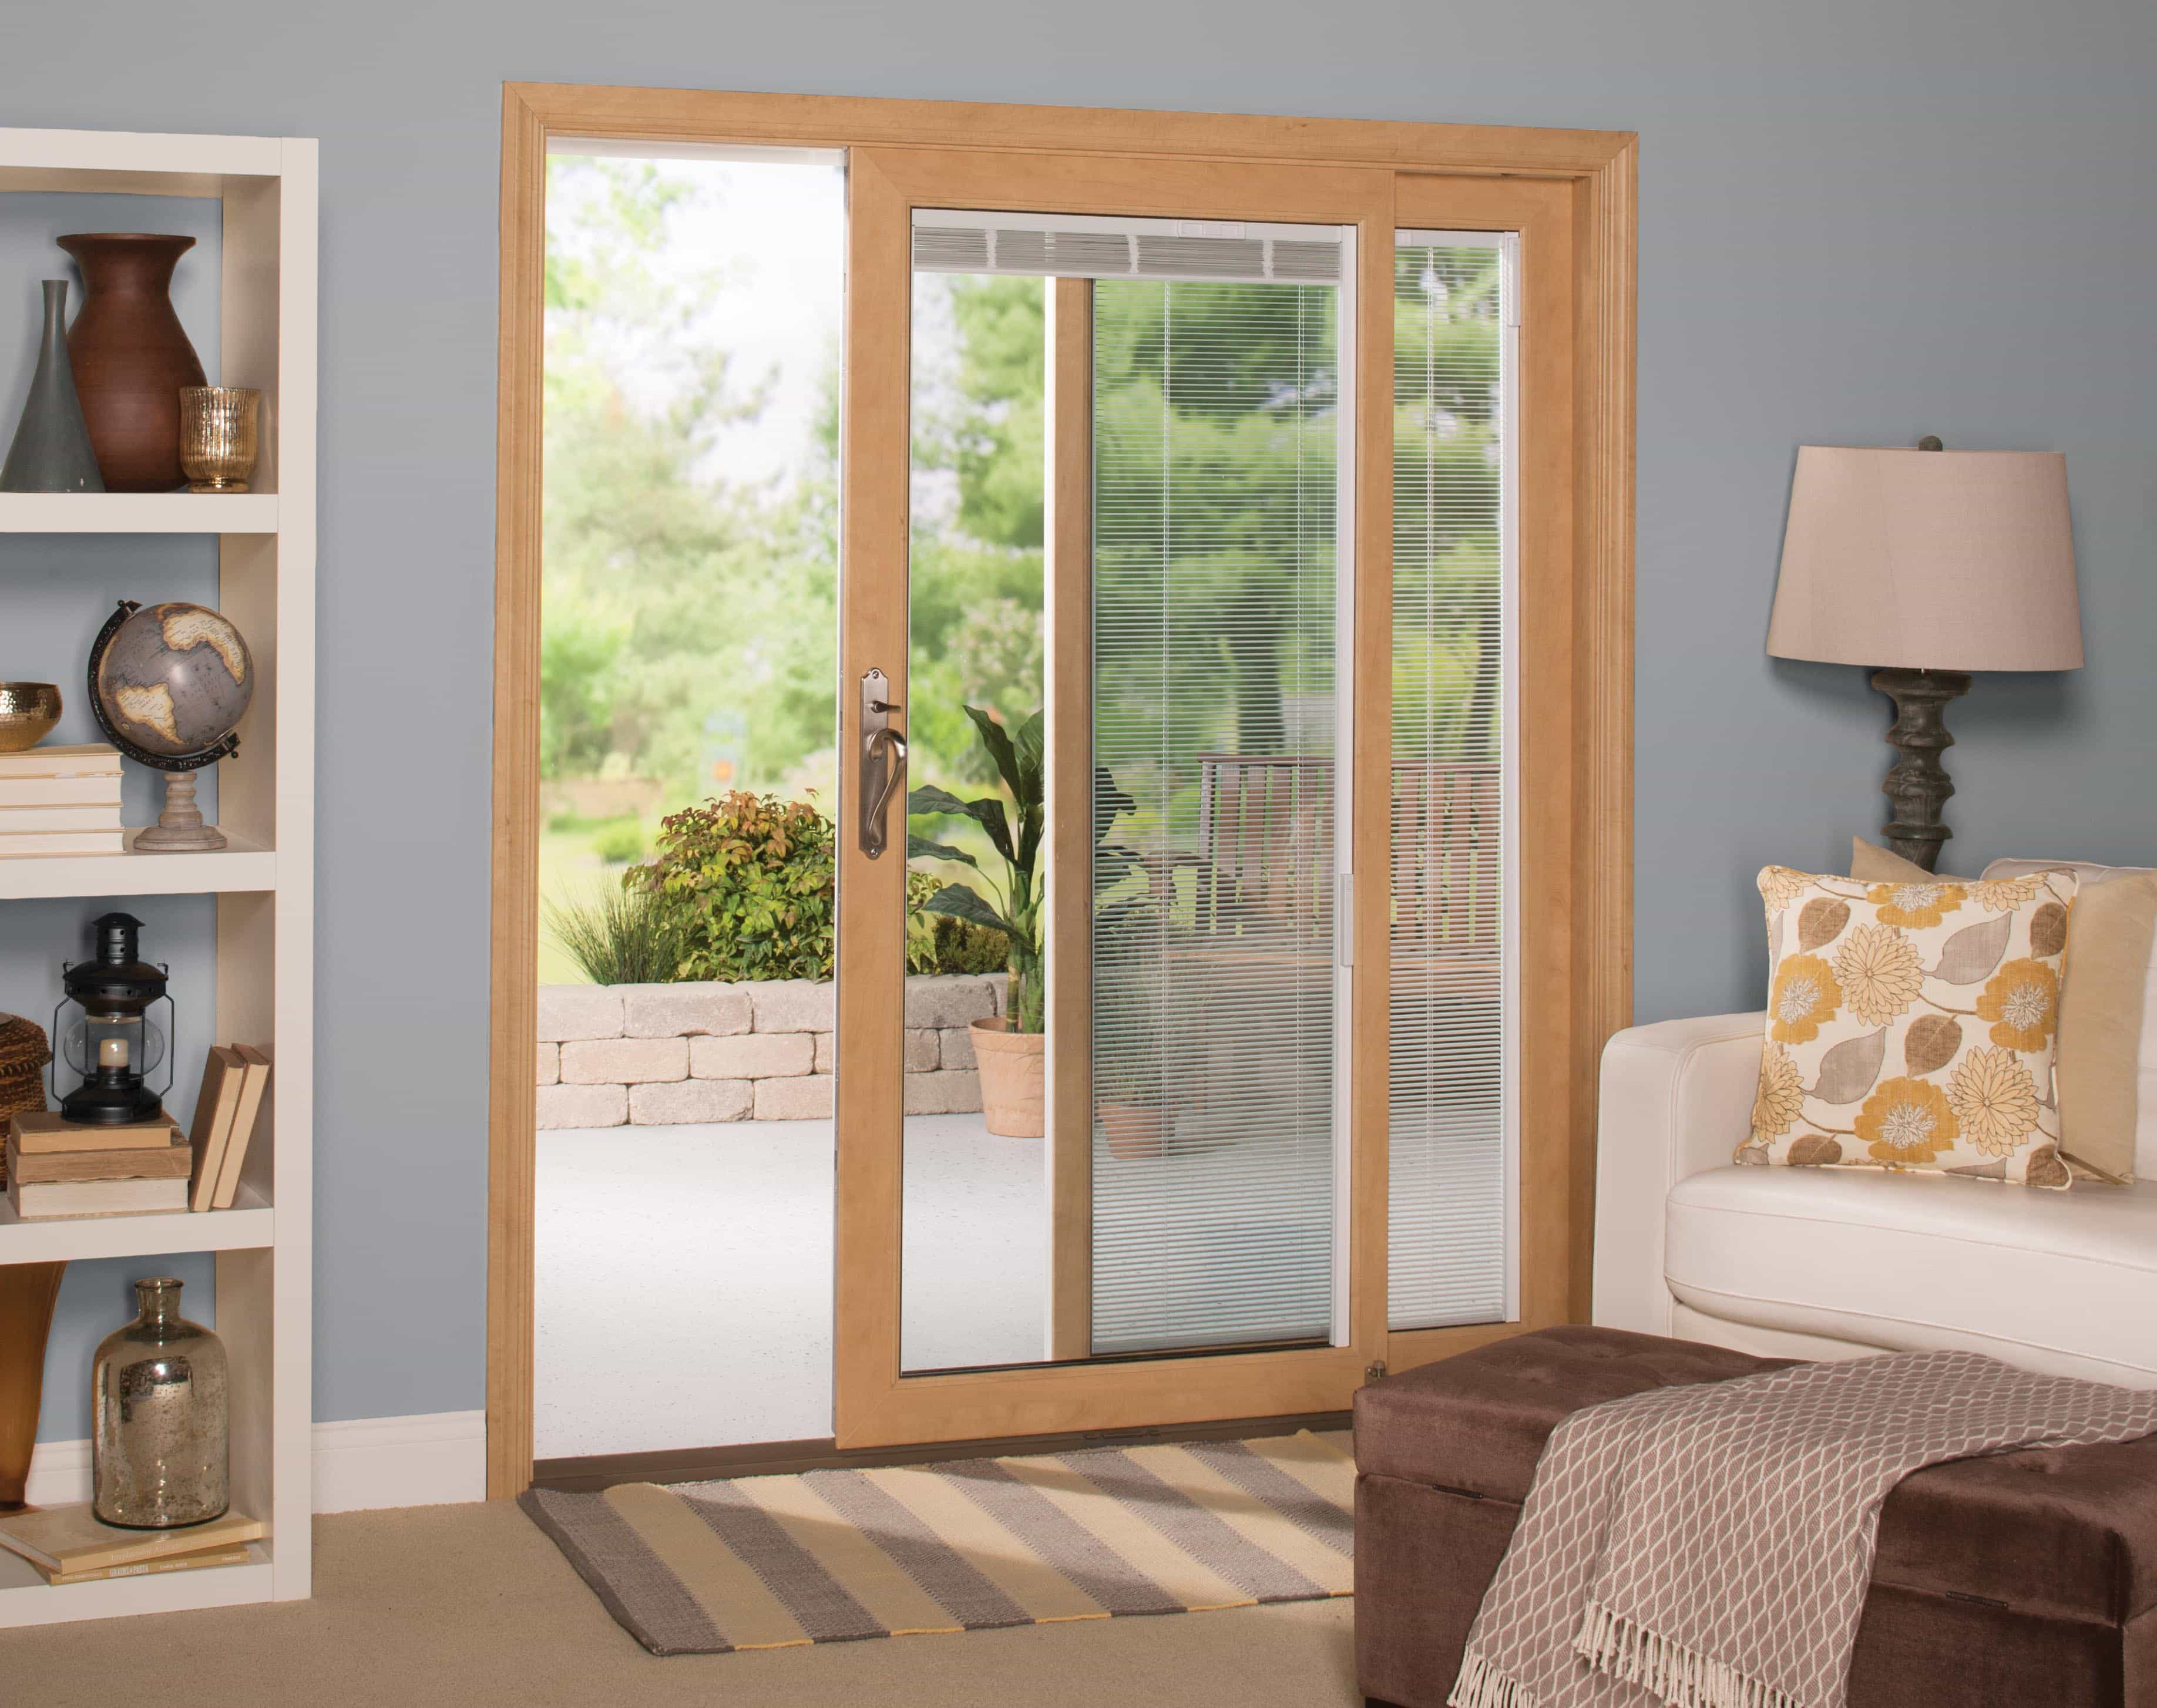 Sunshiny Blinds Onsliding Simplify Your Life Doors Very Common To See Newer Homes Windows Blinds Doors Blinds Are Becoming Quite Windows houzz 01 Windows With Built In Blinds